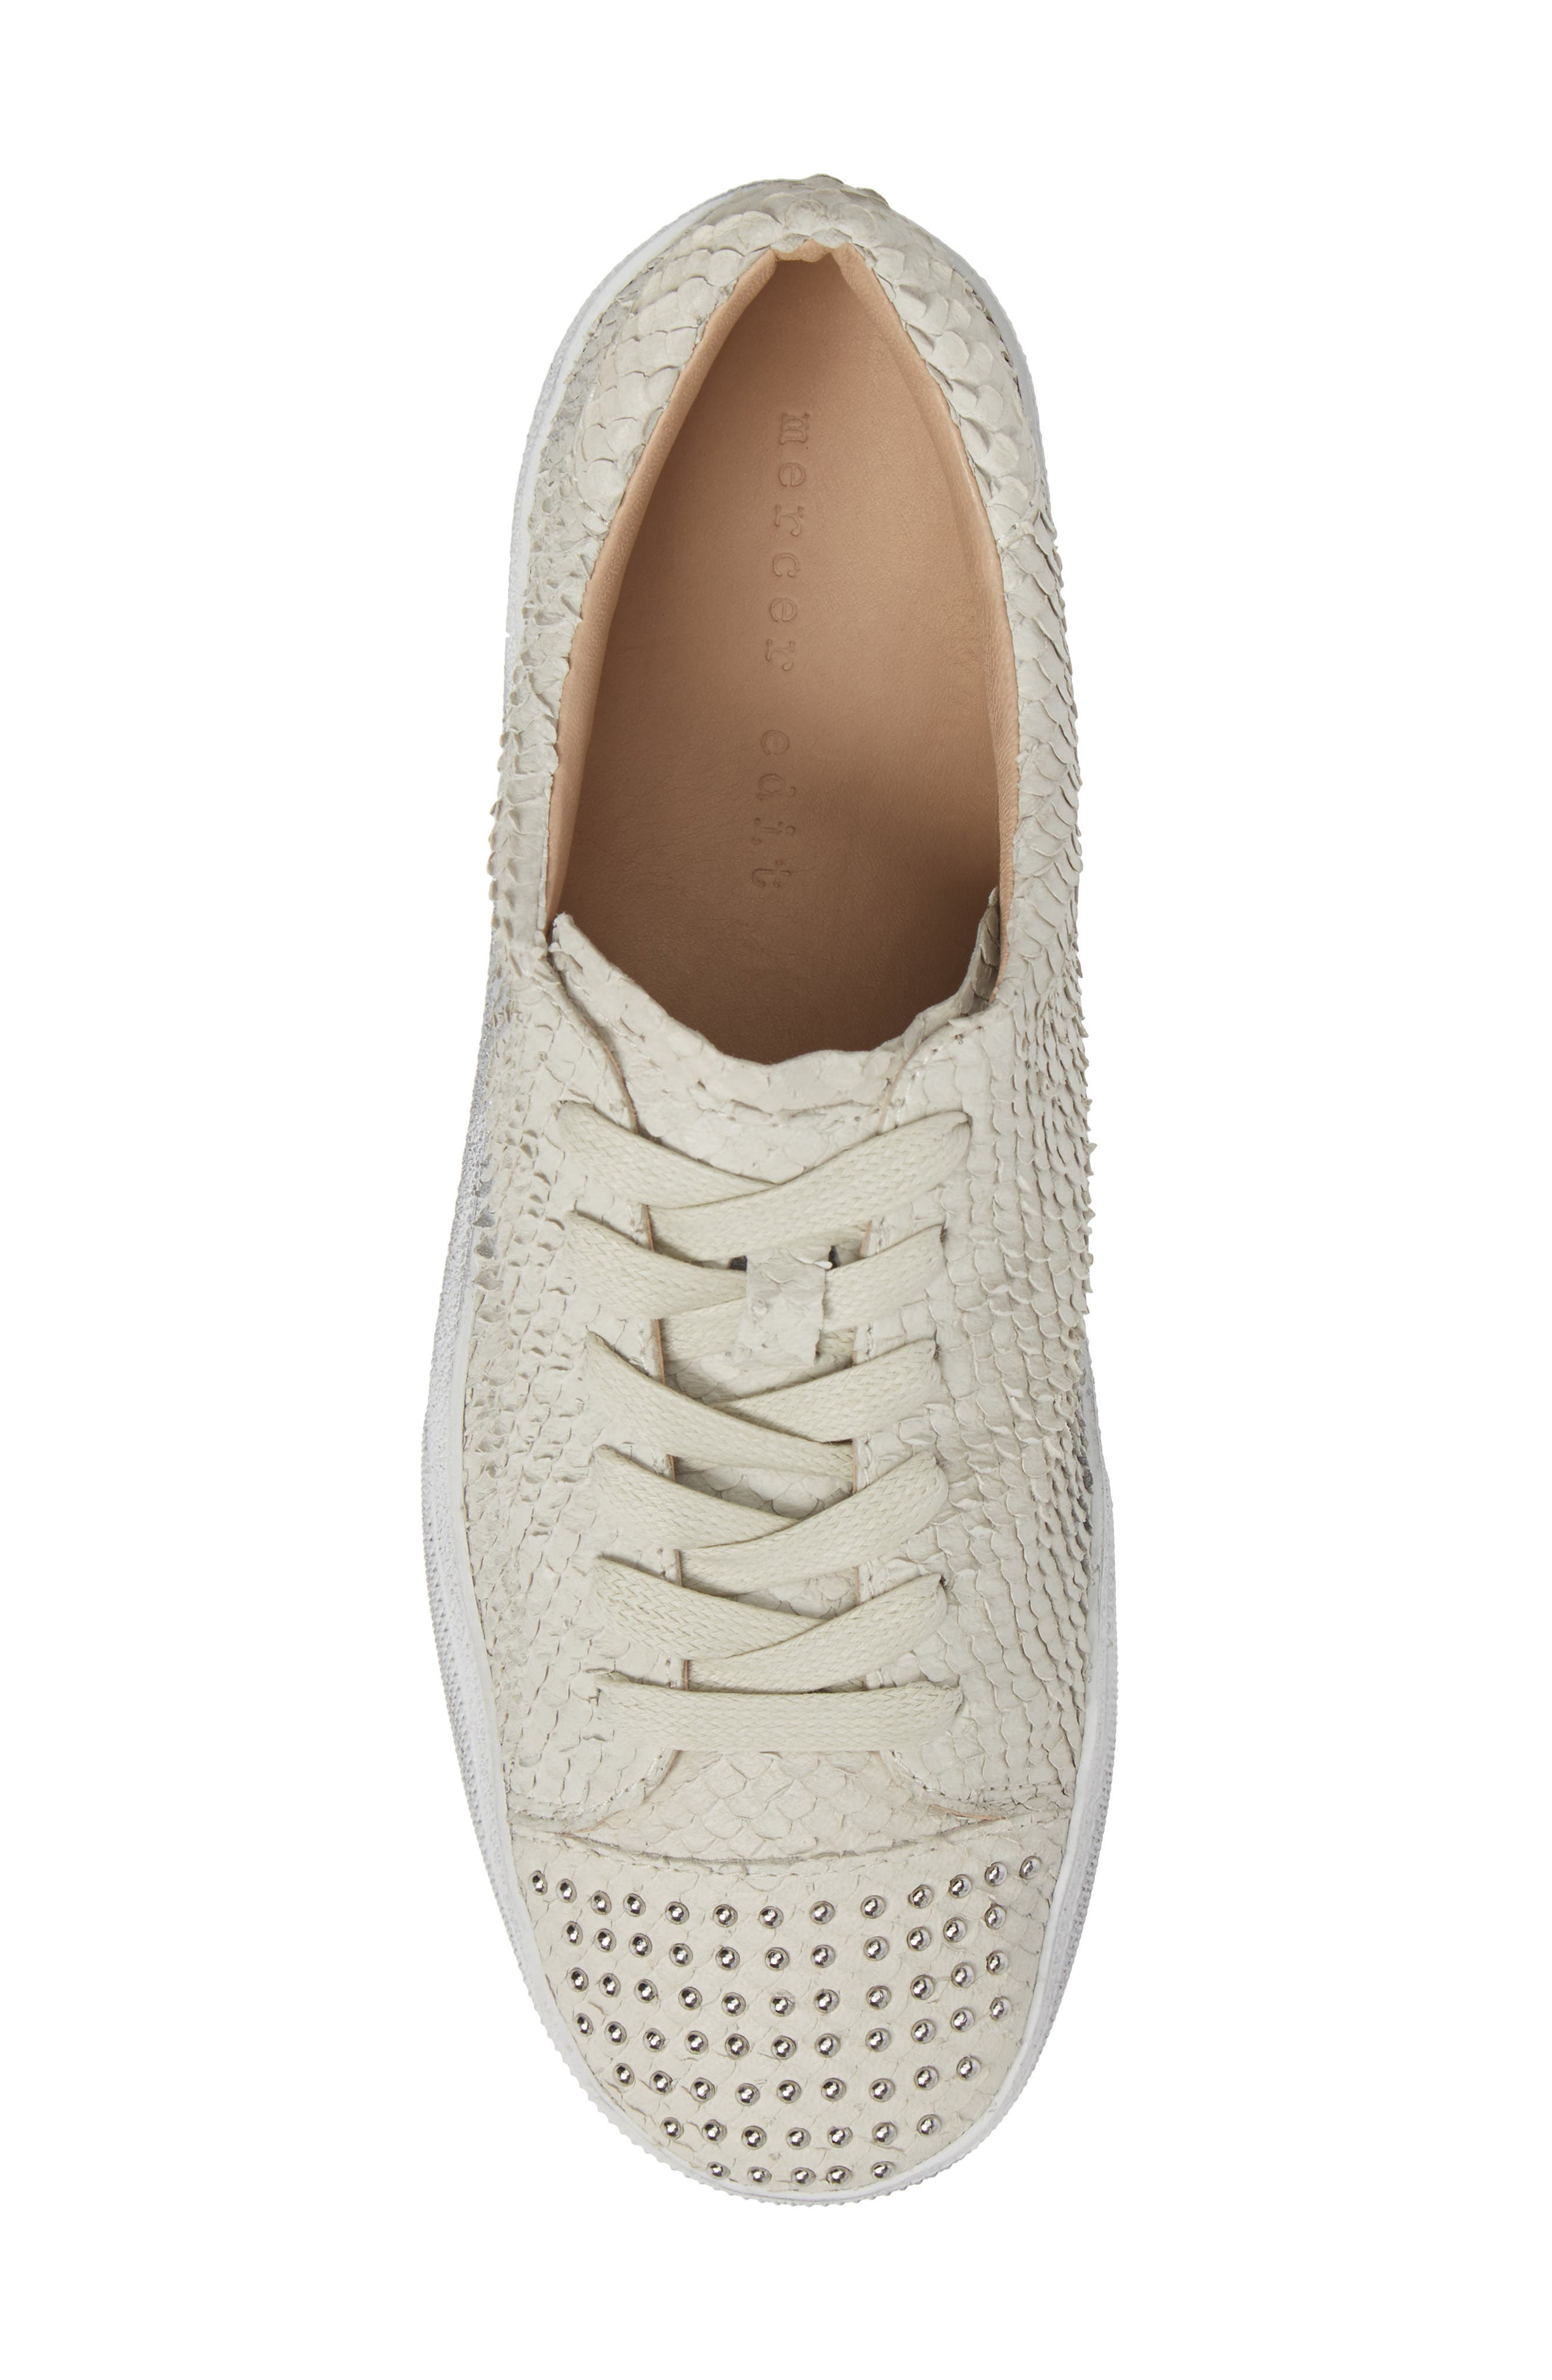 Catcall Studded Sneaker,                             Alternate thumbnail 5, color,                             Vodka/ Silver